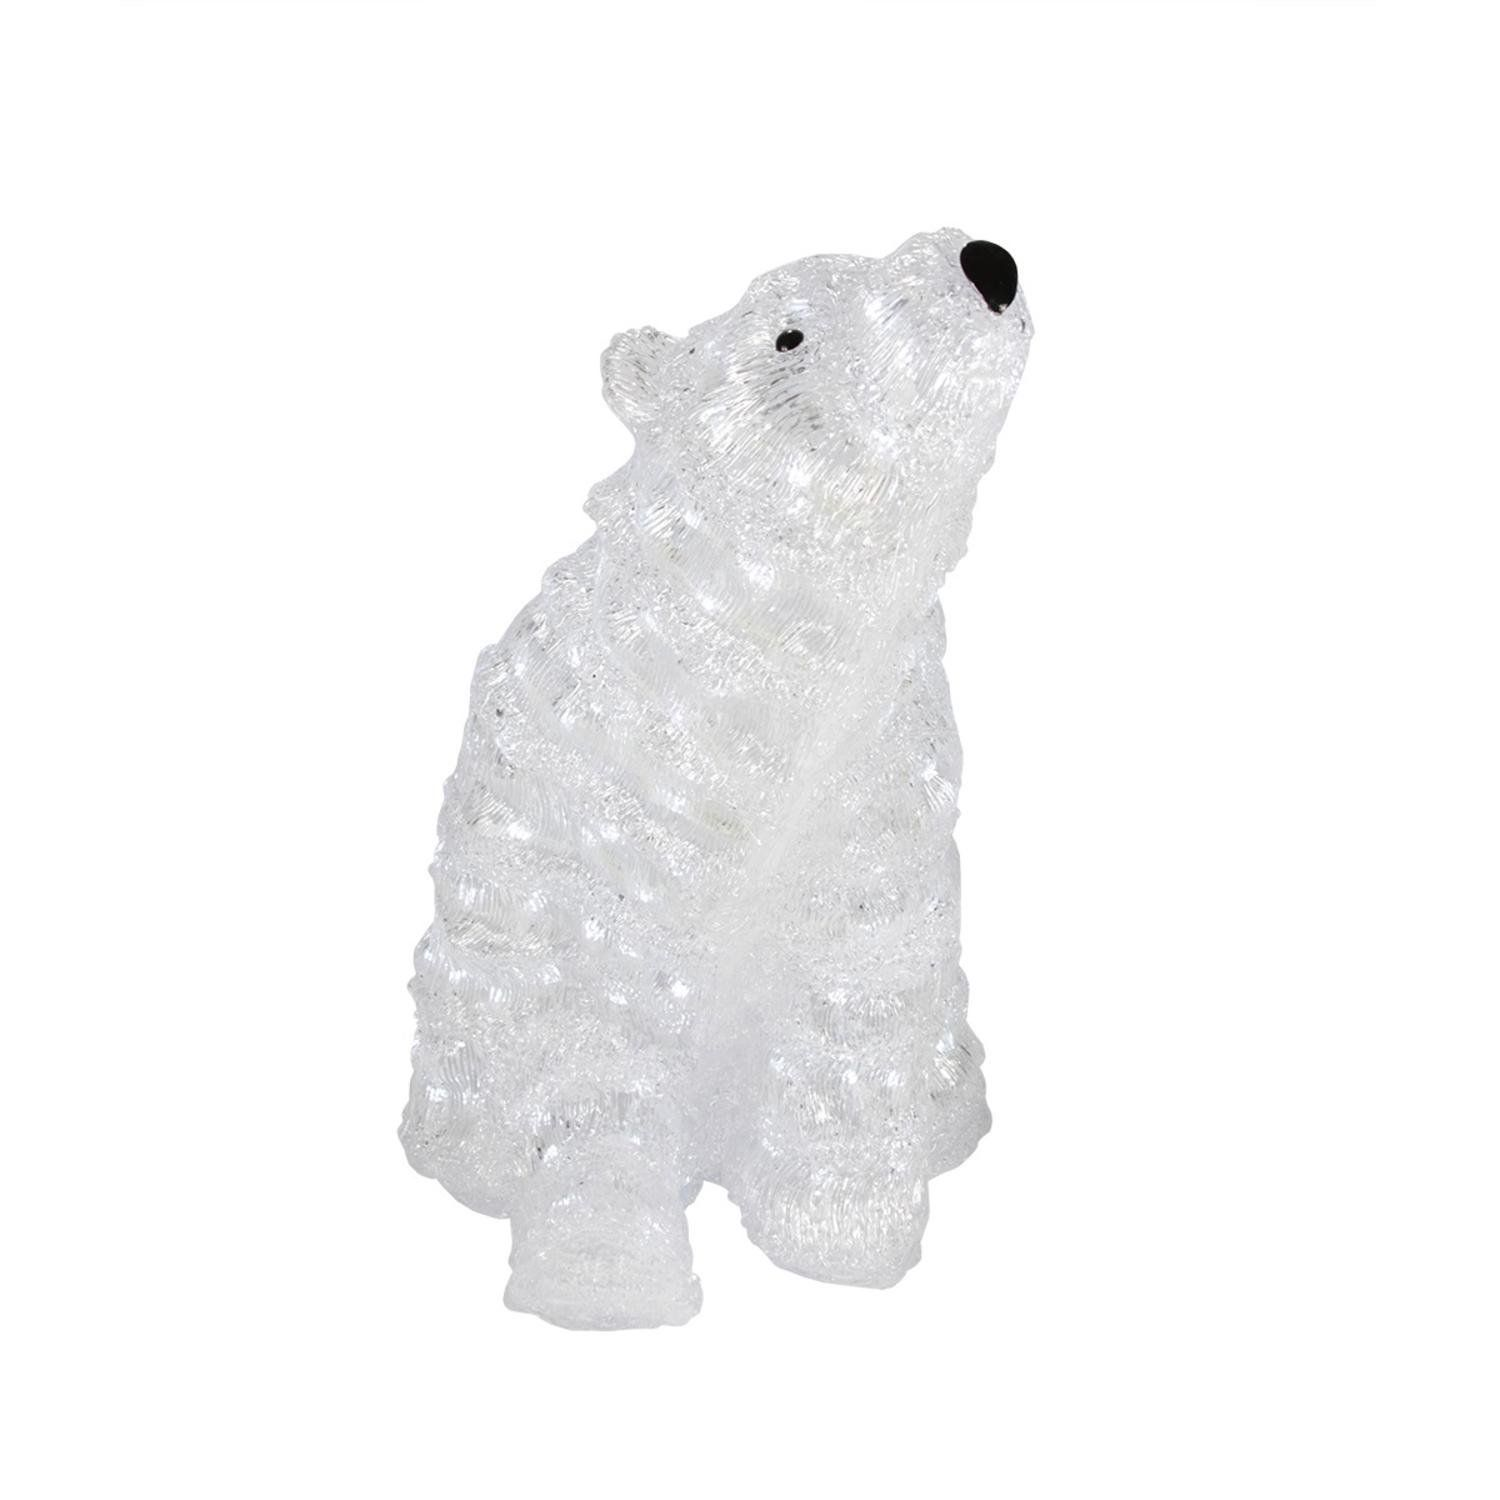 Stupell yorkie dog 3 panel decorative fireplace screen - Northlight 18 Lighted Commercial Grade Acrylic Polar Bear Christmas Display Decoration To View Further